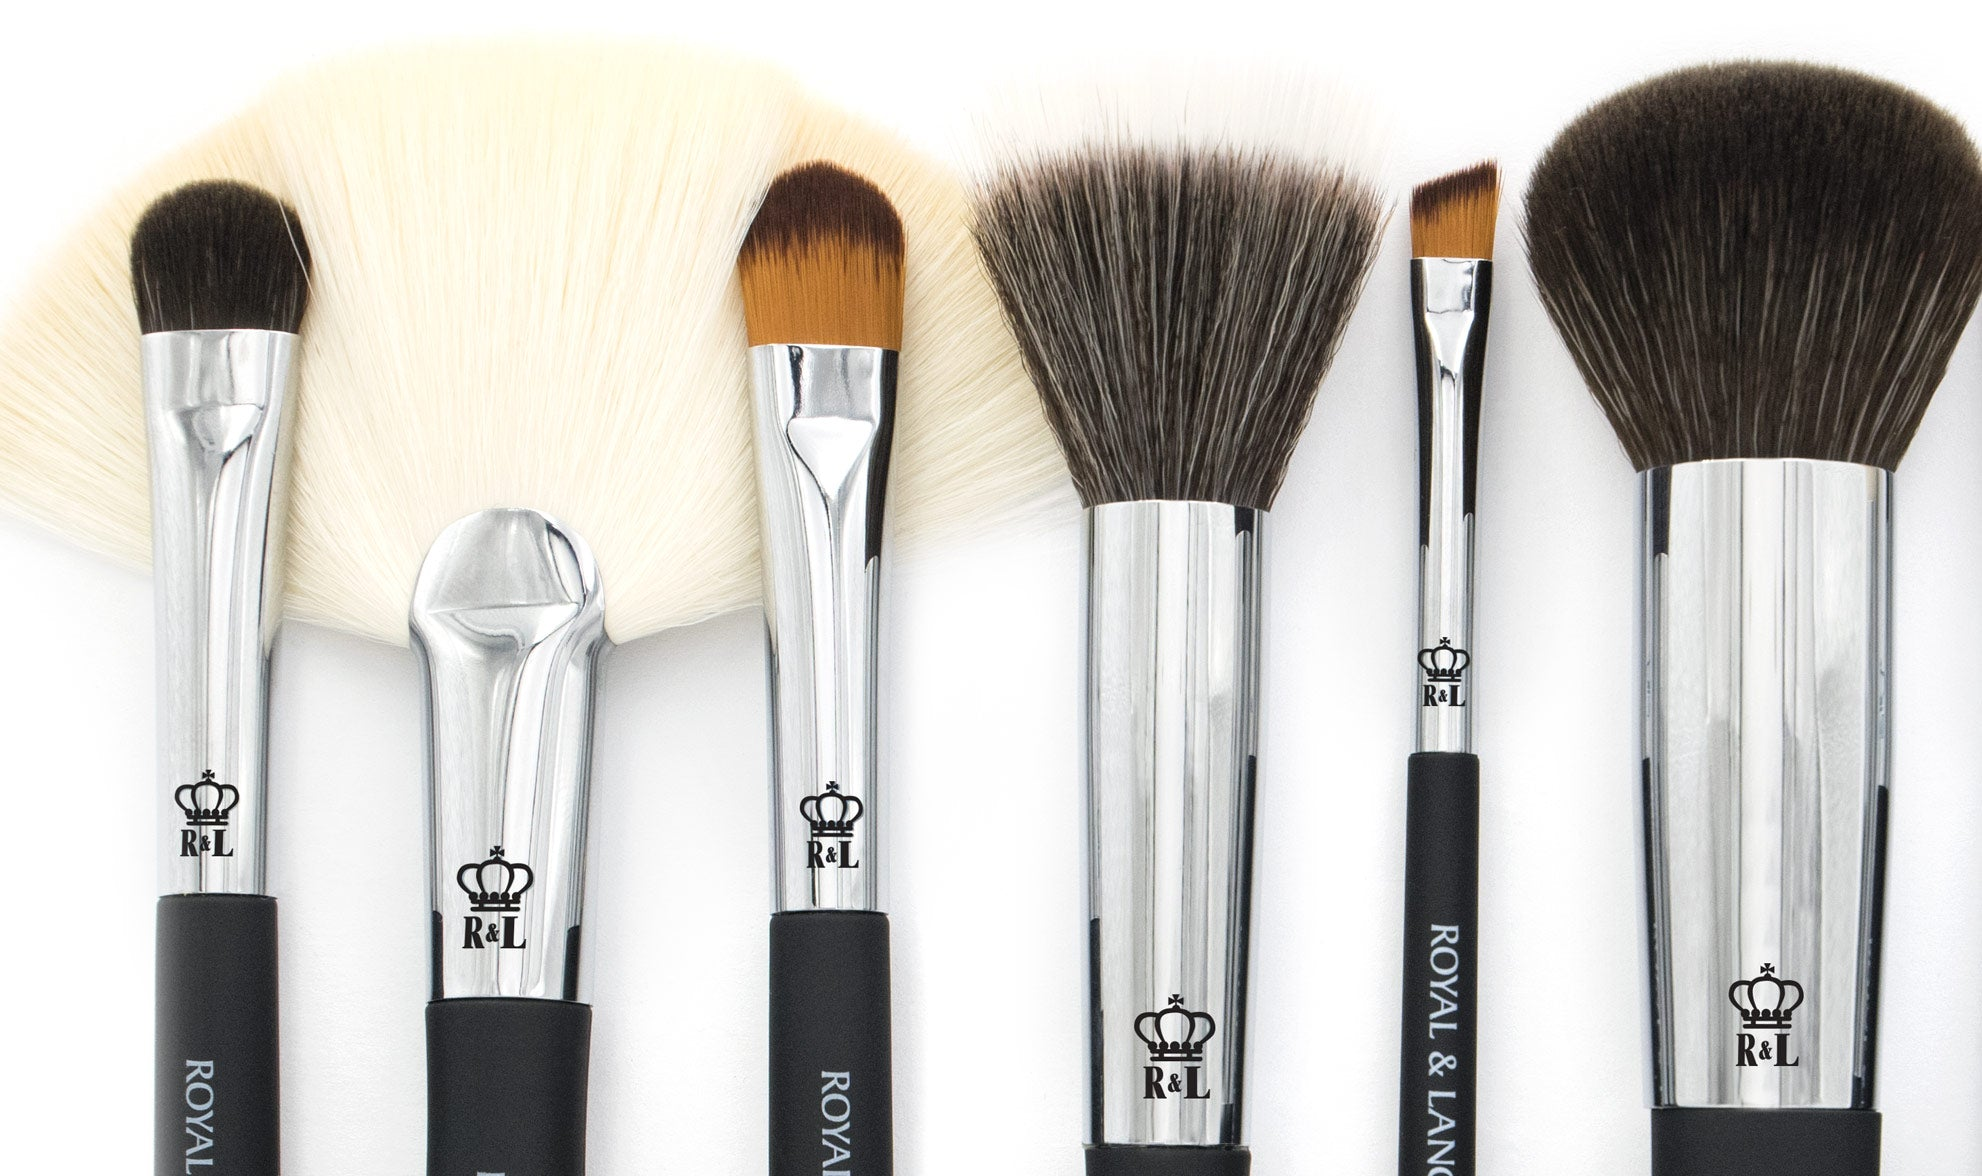 Royalty Red Pro Member Program featuring OMNIA Professional Brushes